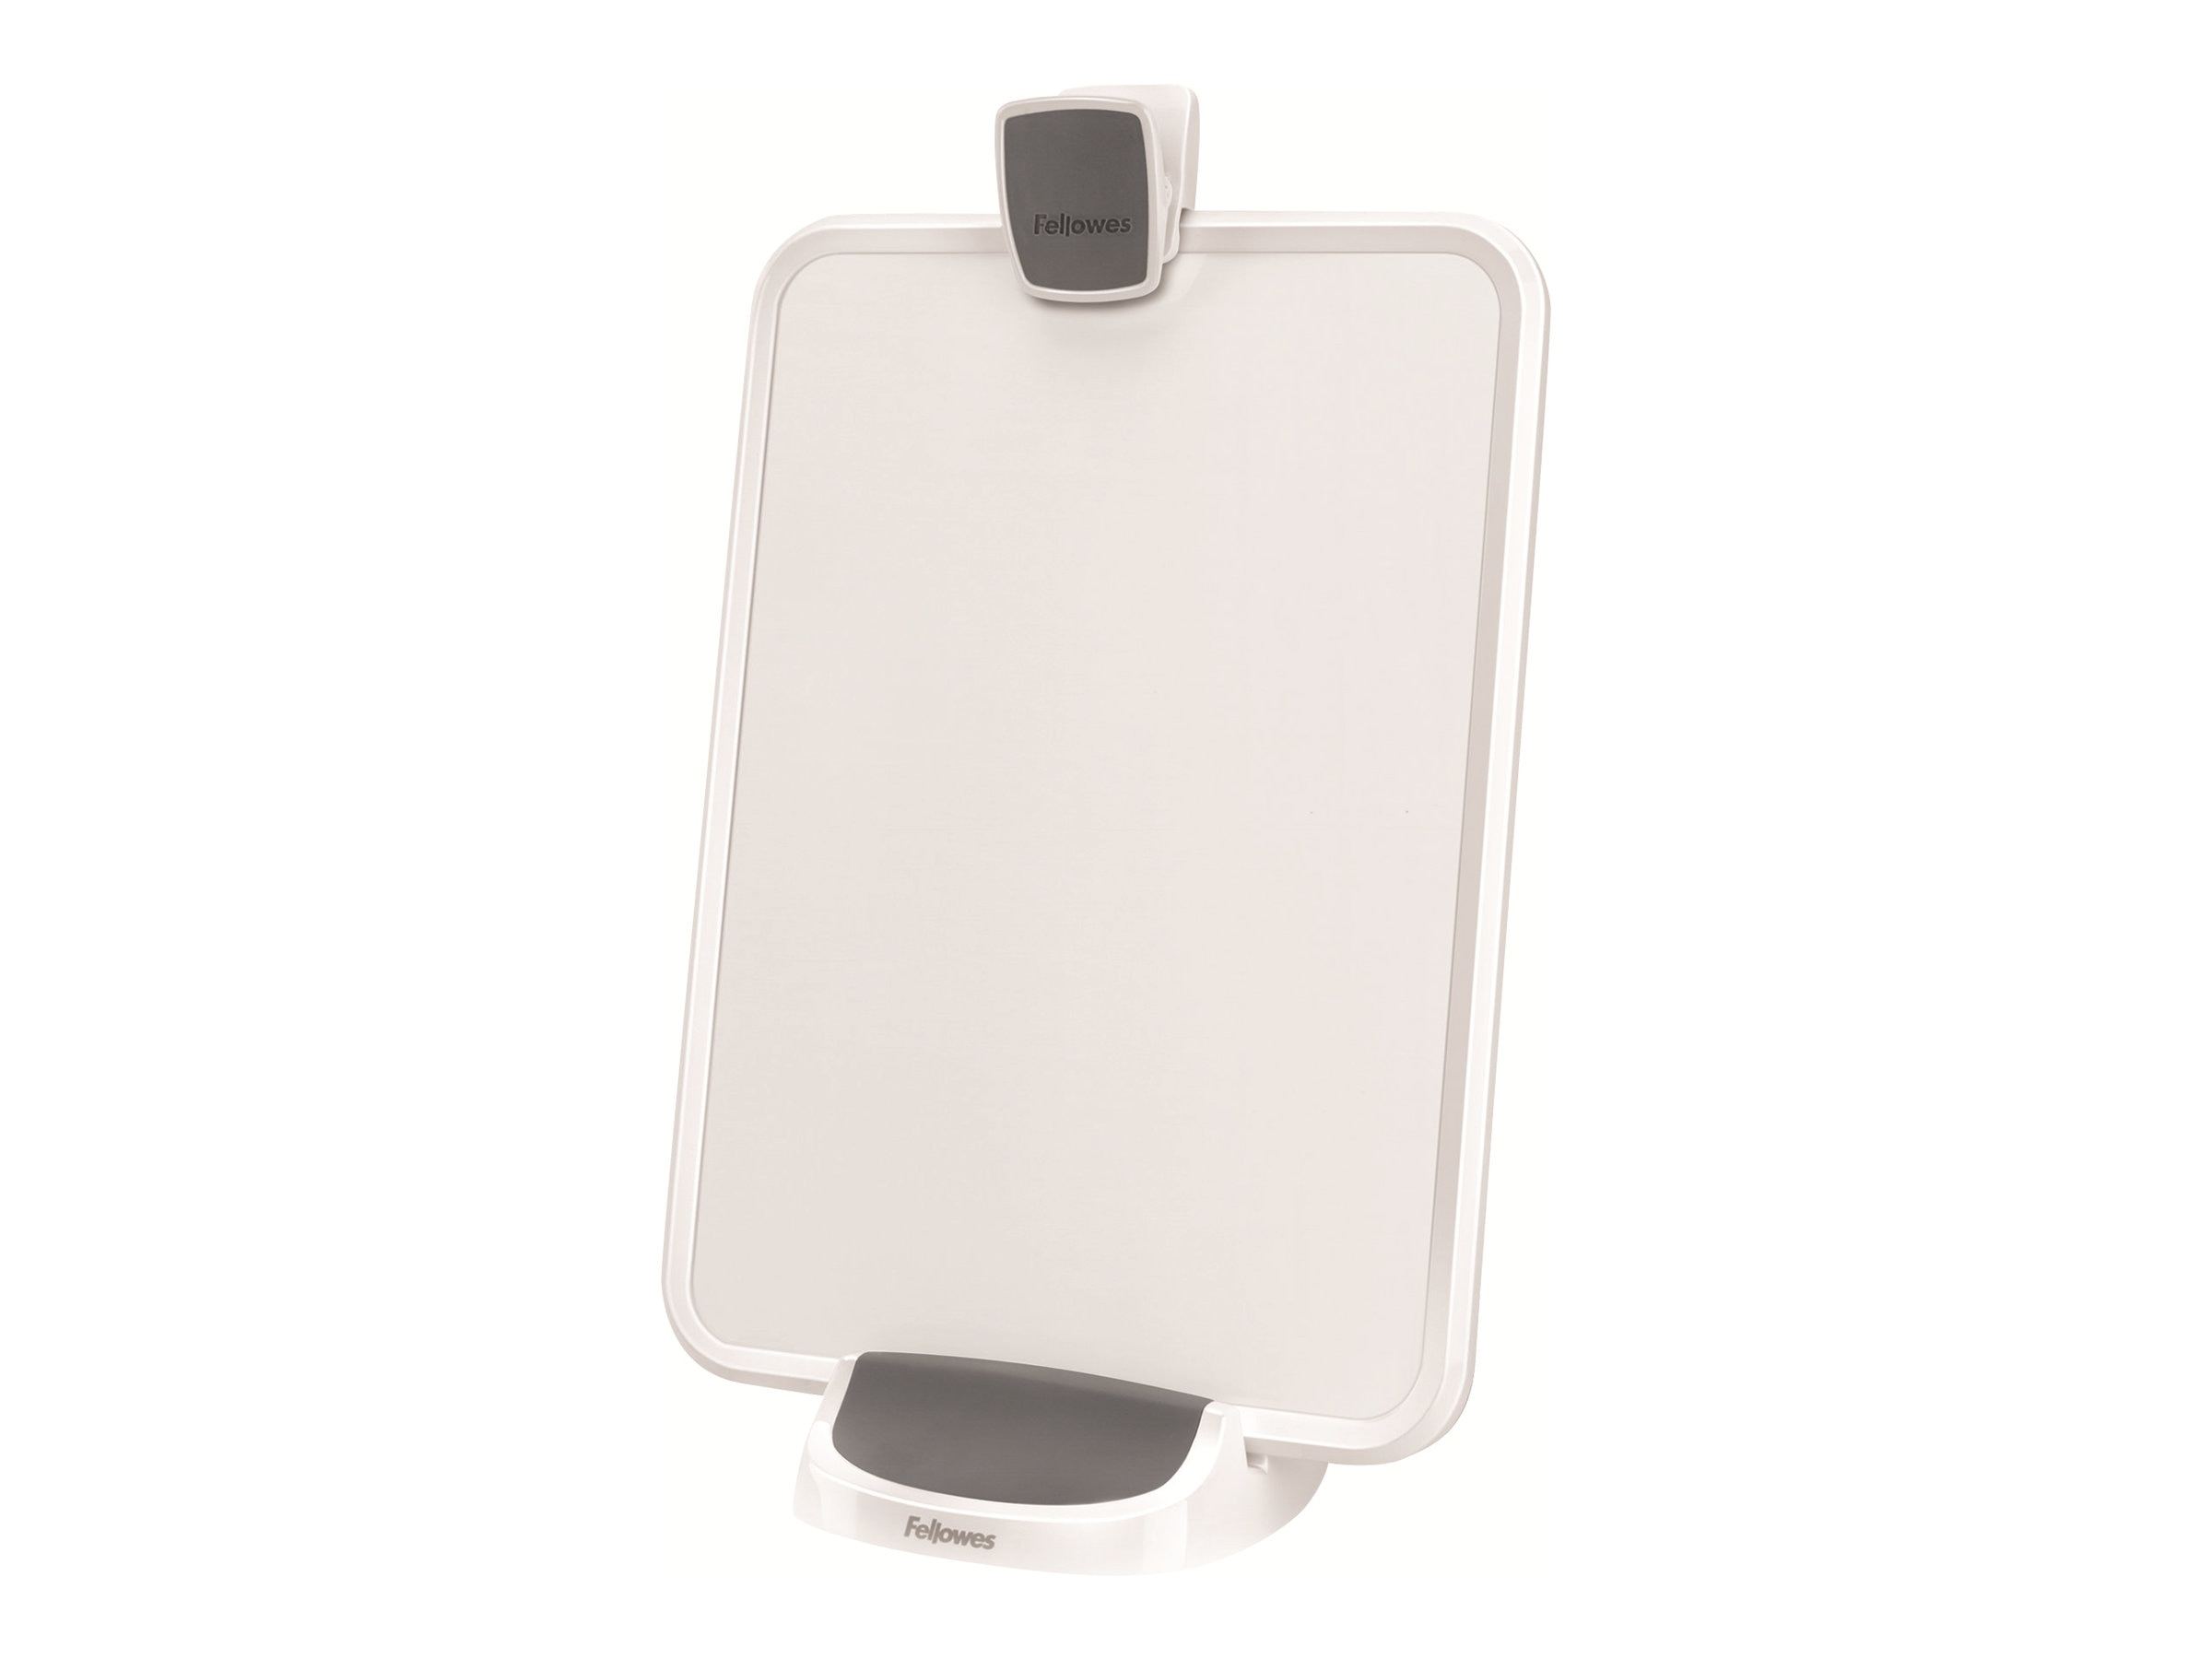 Fellowes I-Spire Series 3 x 1 Document Lift Design Board & Clipboard